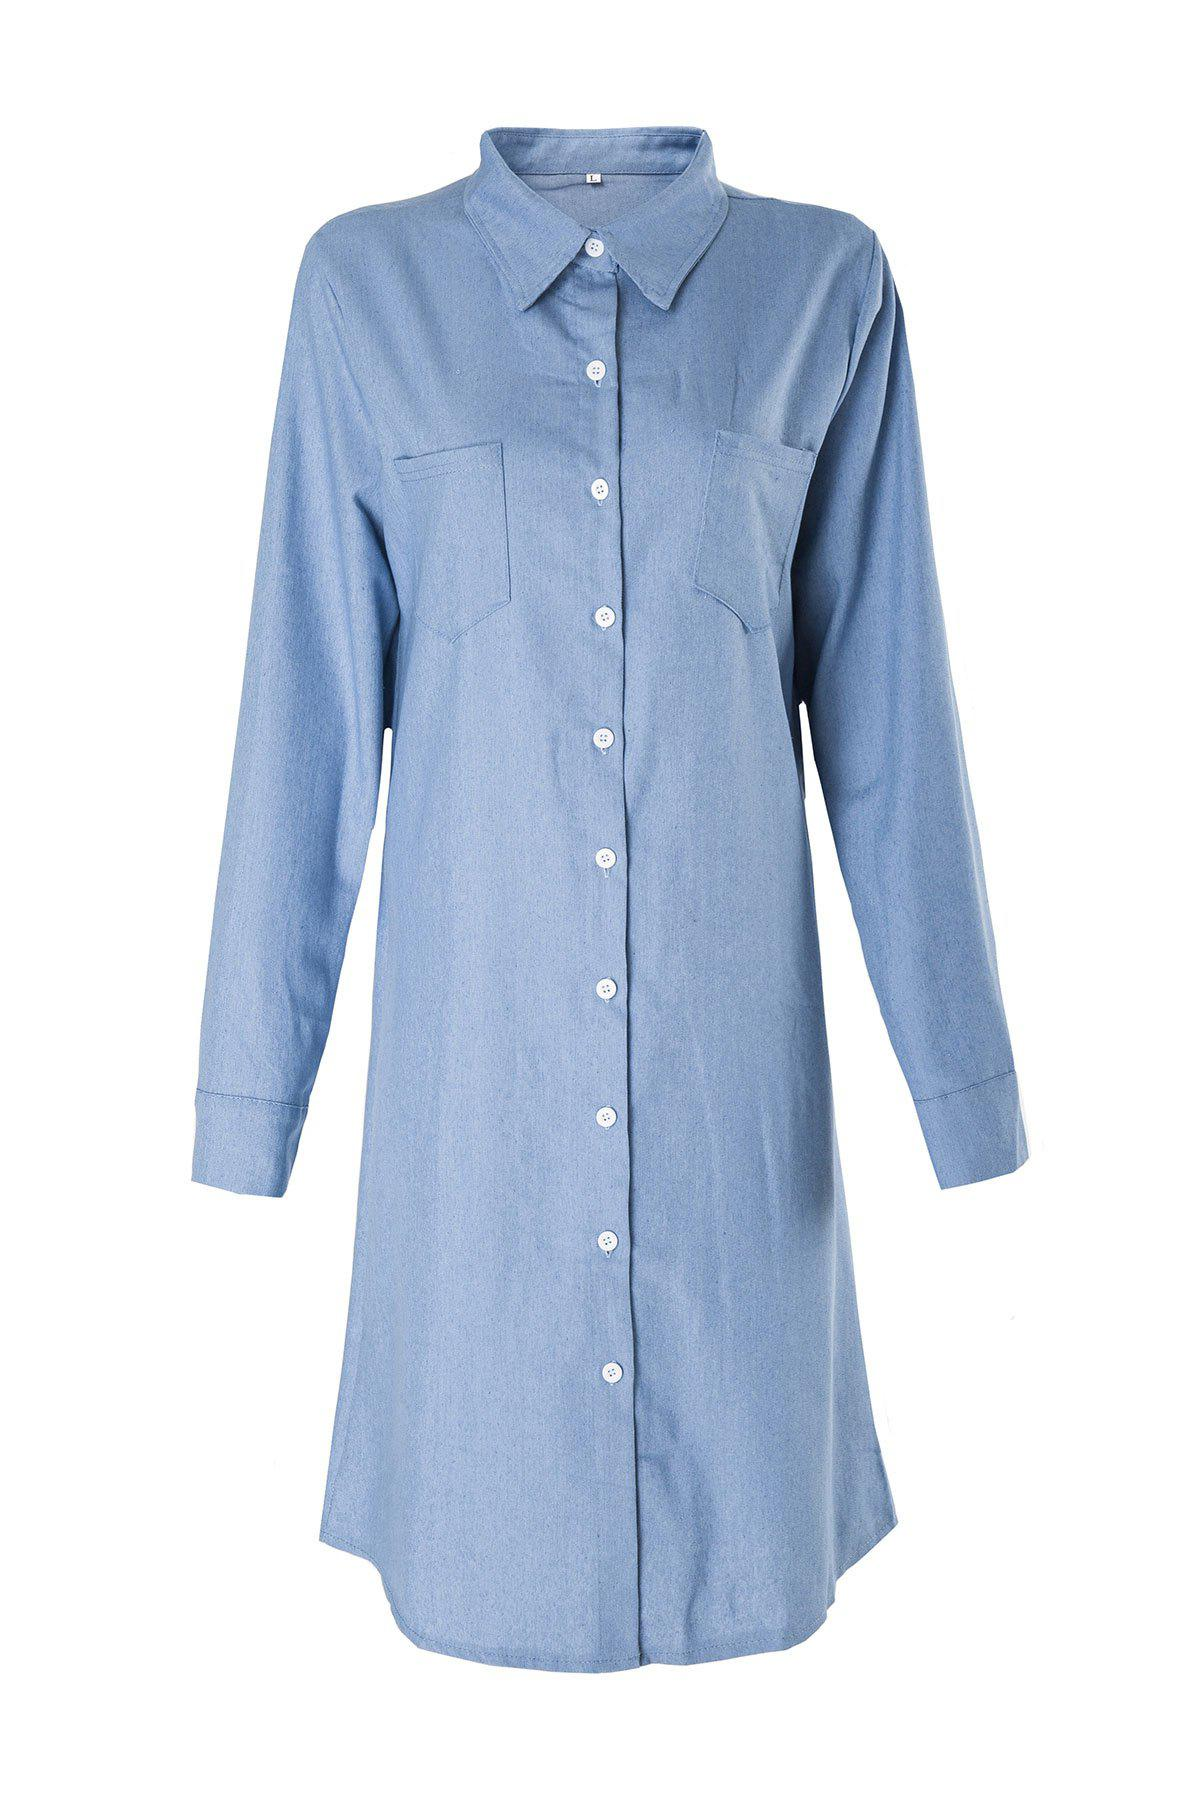 Brief Blue Polo Collar Long Sleeve Denim Blouse For Women - BLUE M